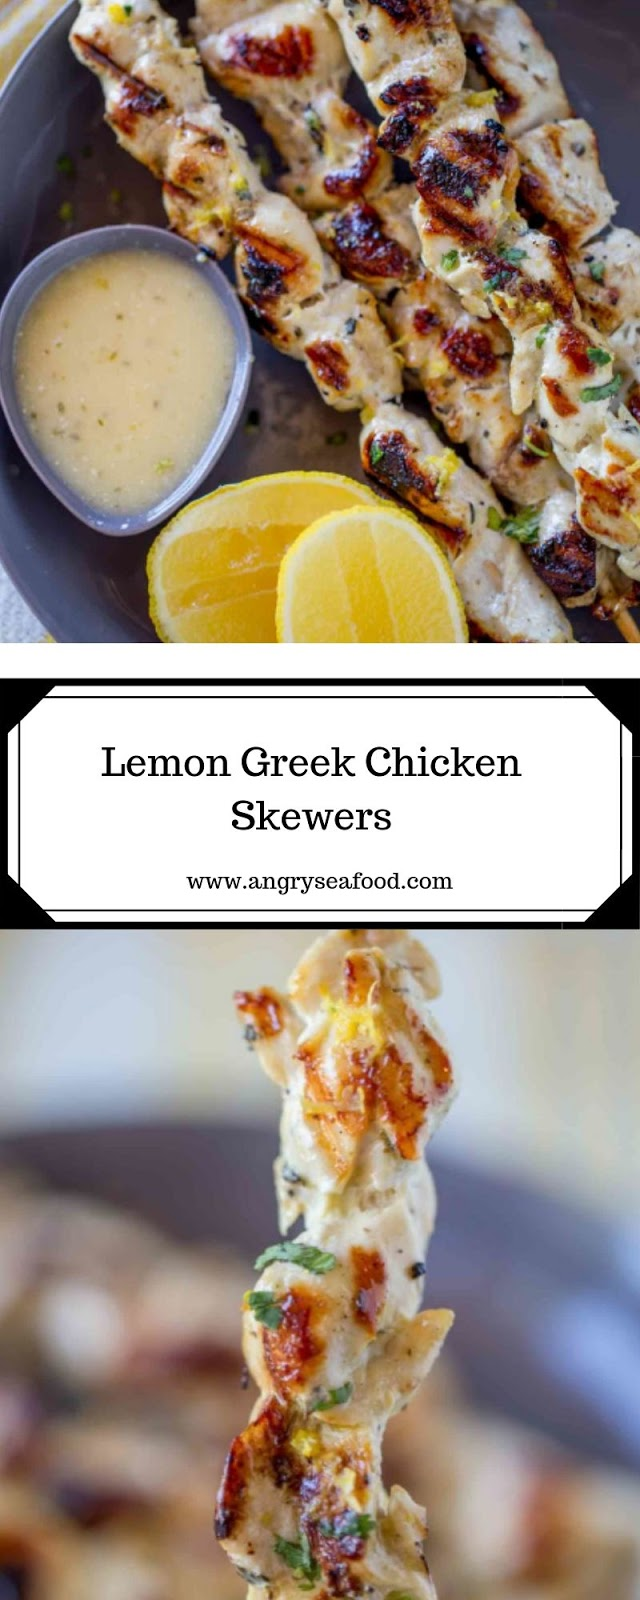 Lemon Greek Chicken Skewers